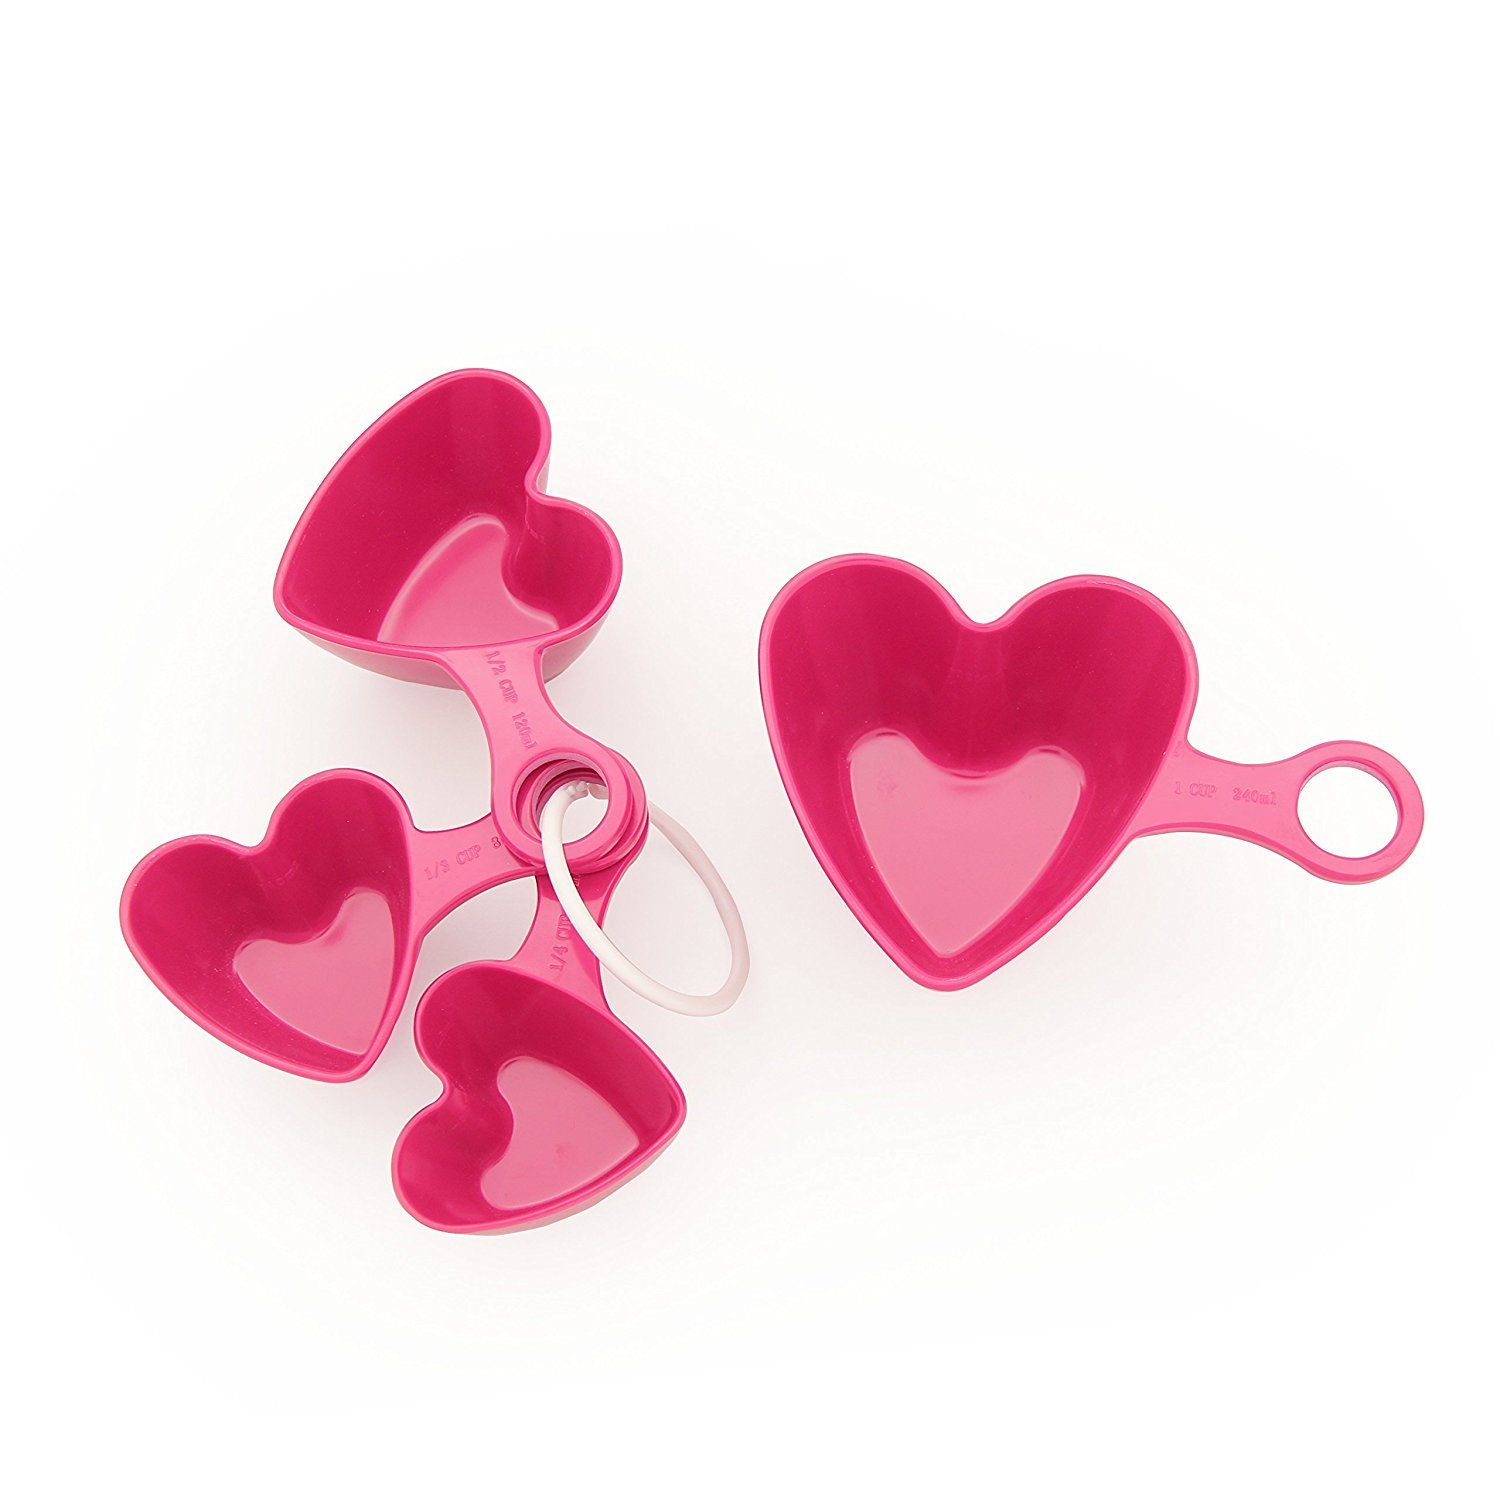 Amazon.com: TP up! Pink Heart Plastic Measuring Cups and Spoons, 4 ...